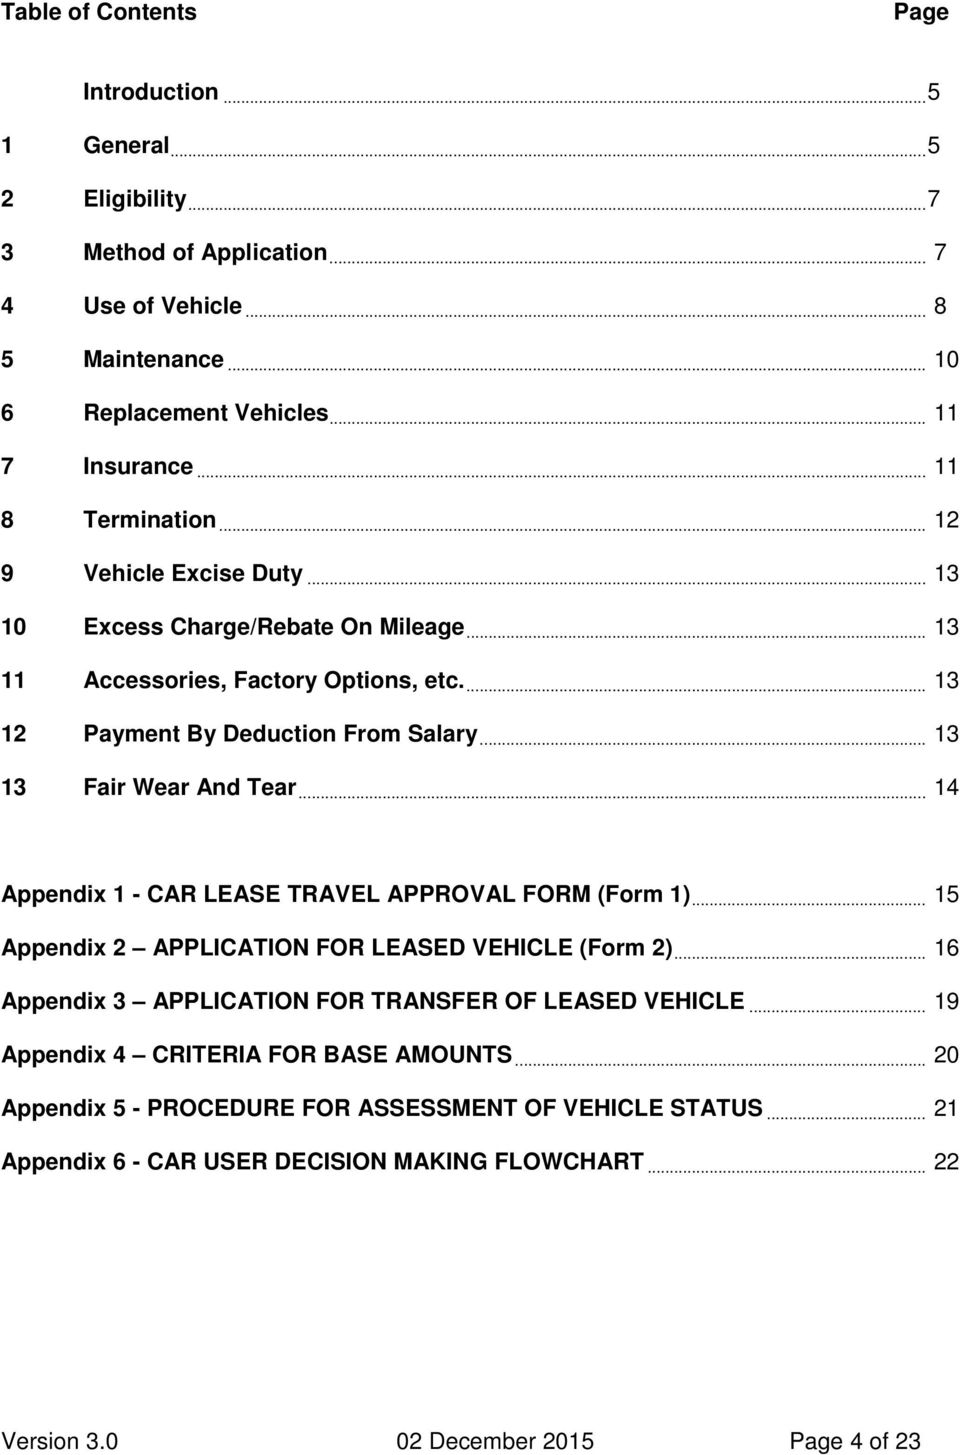 .. 13 13 Fair Wear And Tear... 14 Appendix 1 - CAR LEASE TRAVEL APPROVAL FORM (Form 1)... 15 Appendix 2 APPLICATION FOR LEASED VEHICLE (Form 2).